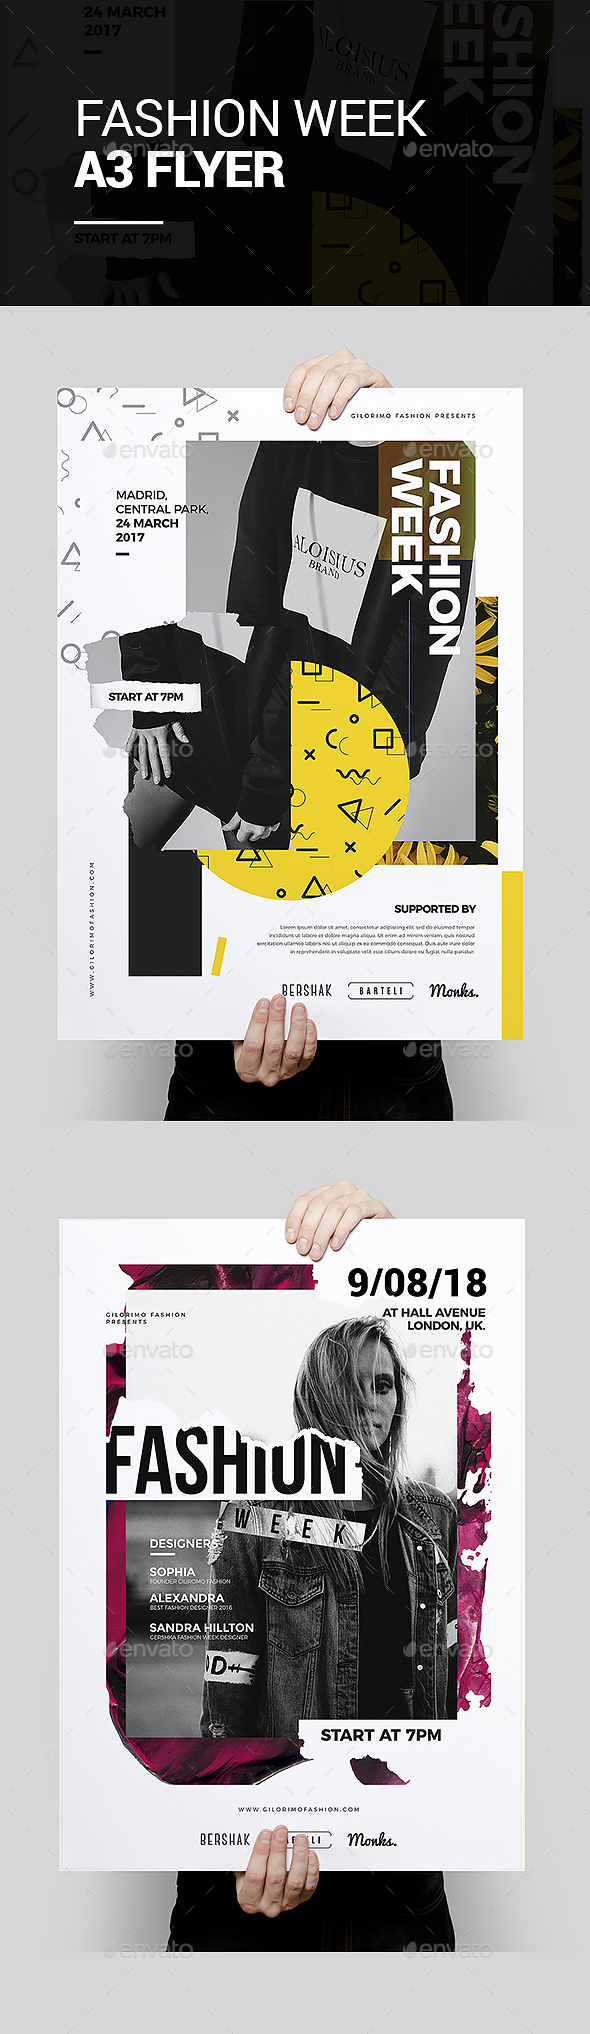 Fashion Week Flyer Poster Template - Events Flyers